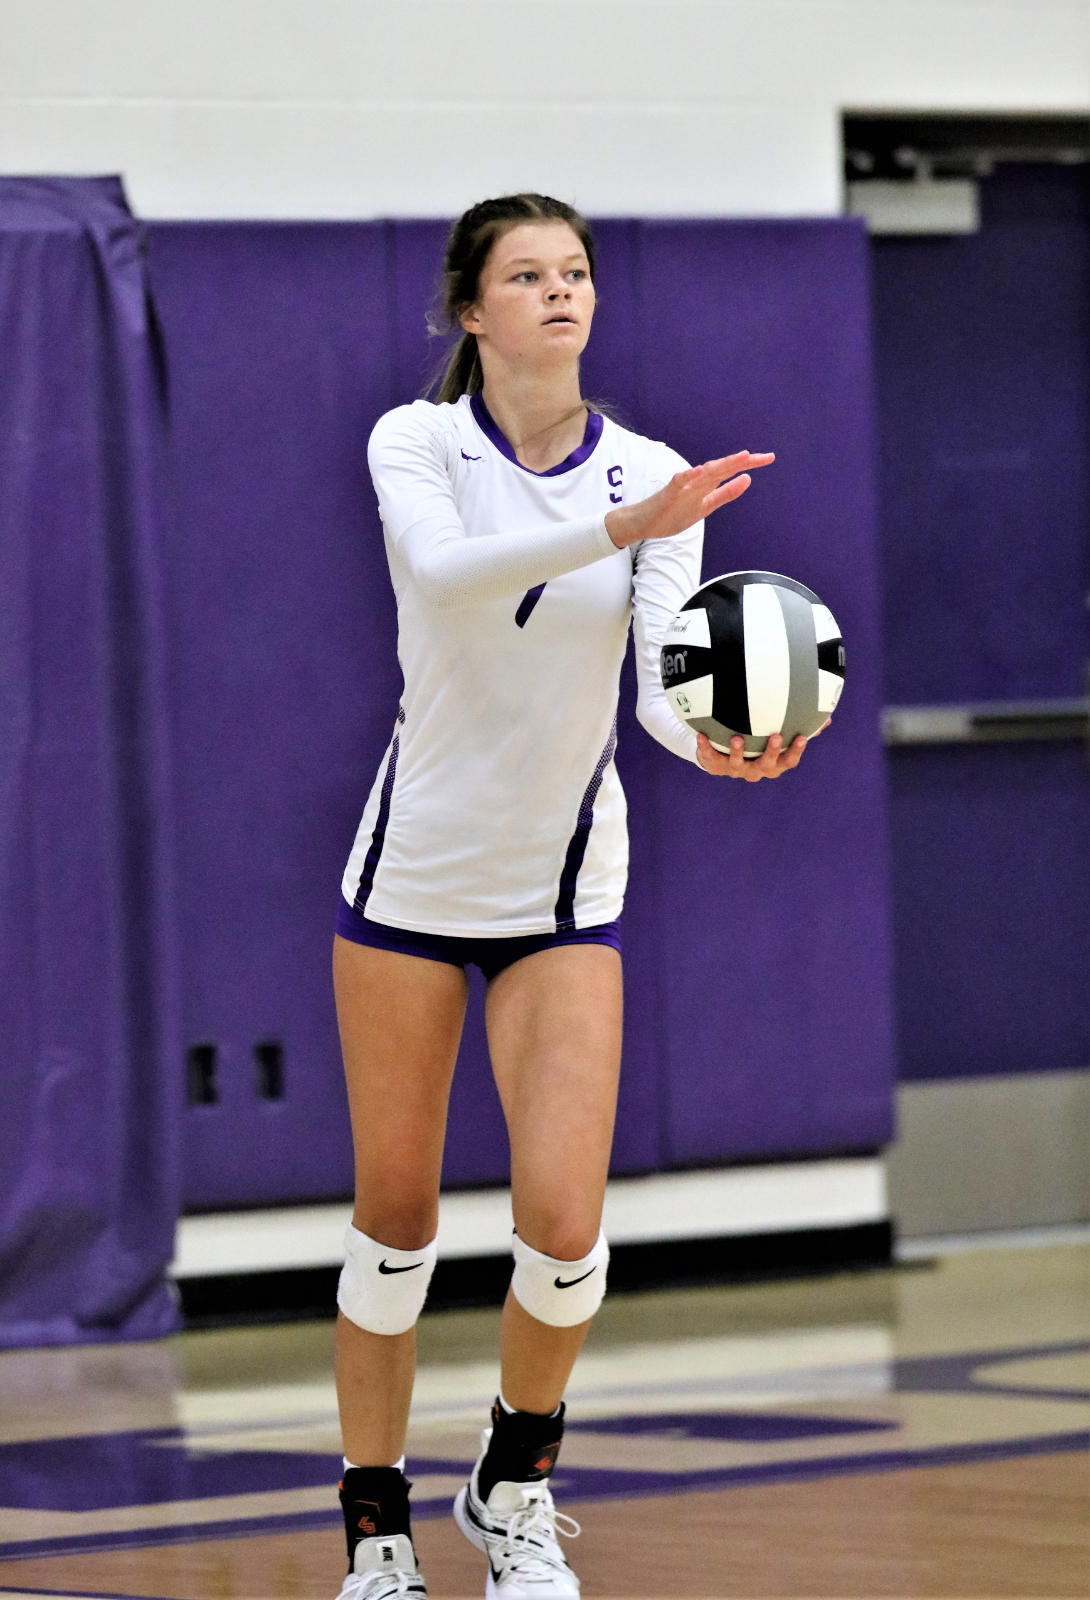 Maddie Smith served 17 straight points to lead the JV Lady Bulldogs to a 25-5 win in game one and a 2-1 in games victory over the Stryker Lady Panthers.